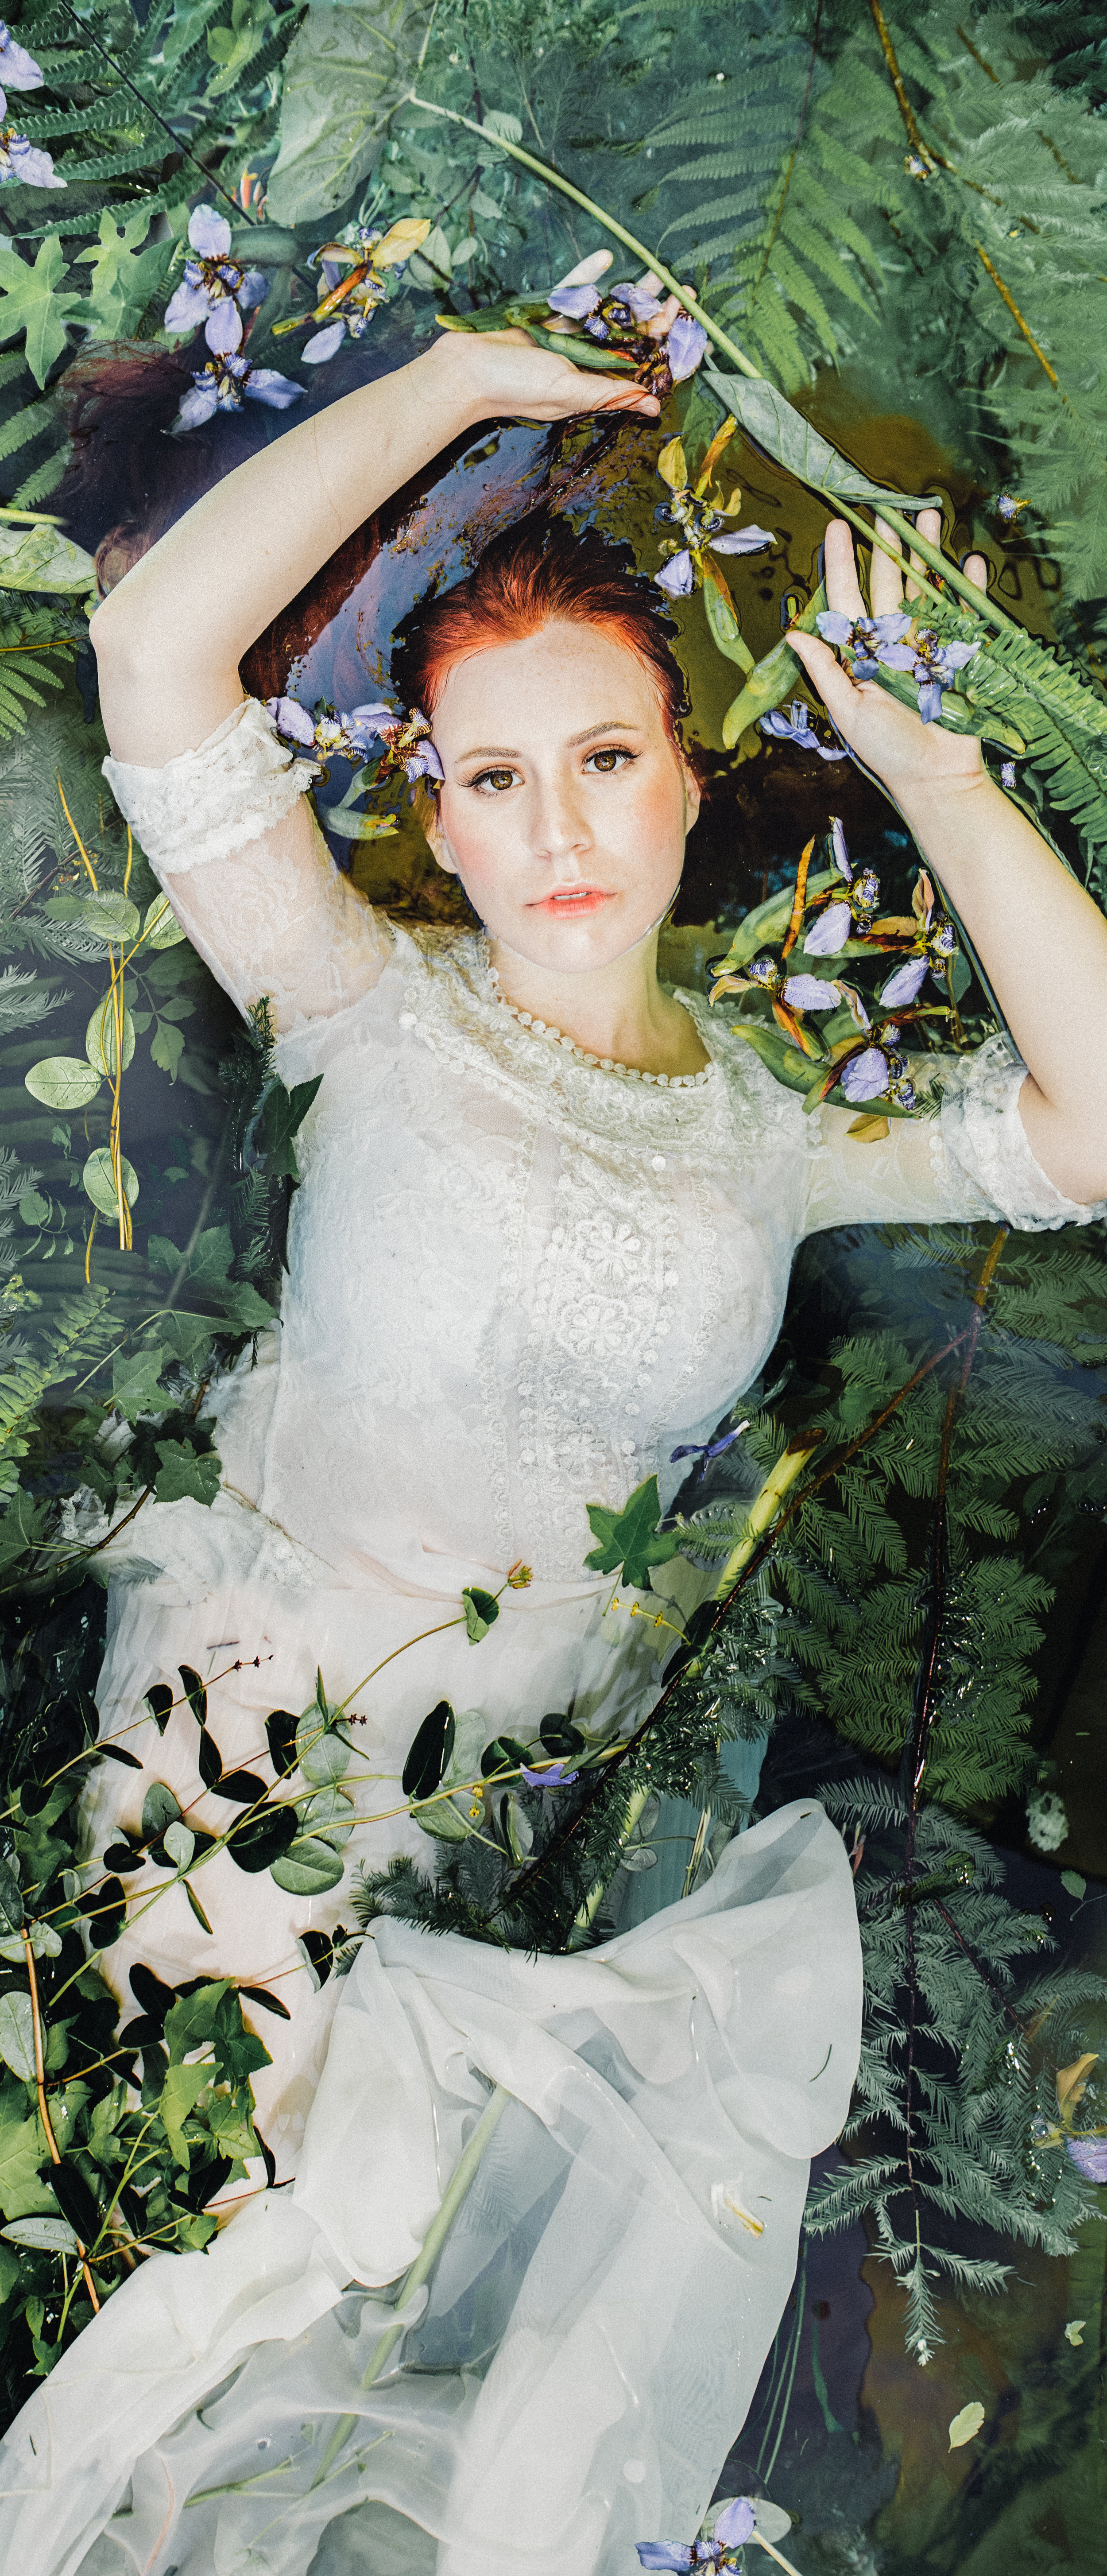 """Ophelia's Water Forest // A portrait series inspired by the story of Ophelia, the idea of rebirth, connecting with nature & water, and the poem """"Sleeping in the Forest"""" by  Mary Oliver  //Photography + Creative direction: Shaina DeCiryan  @shainadeciryan  Photography 